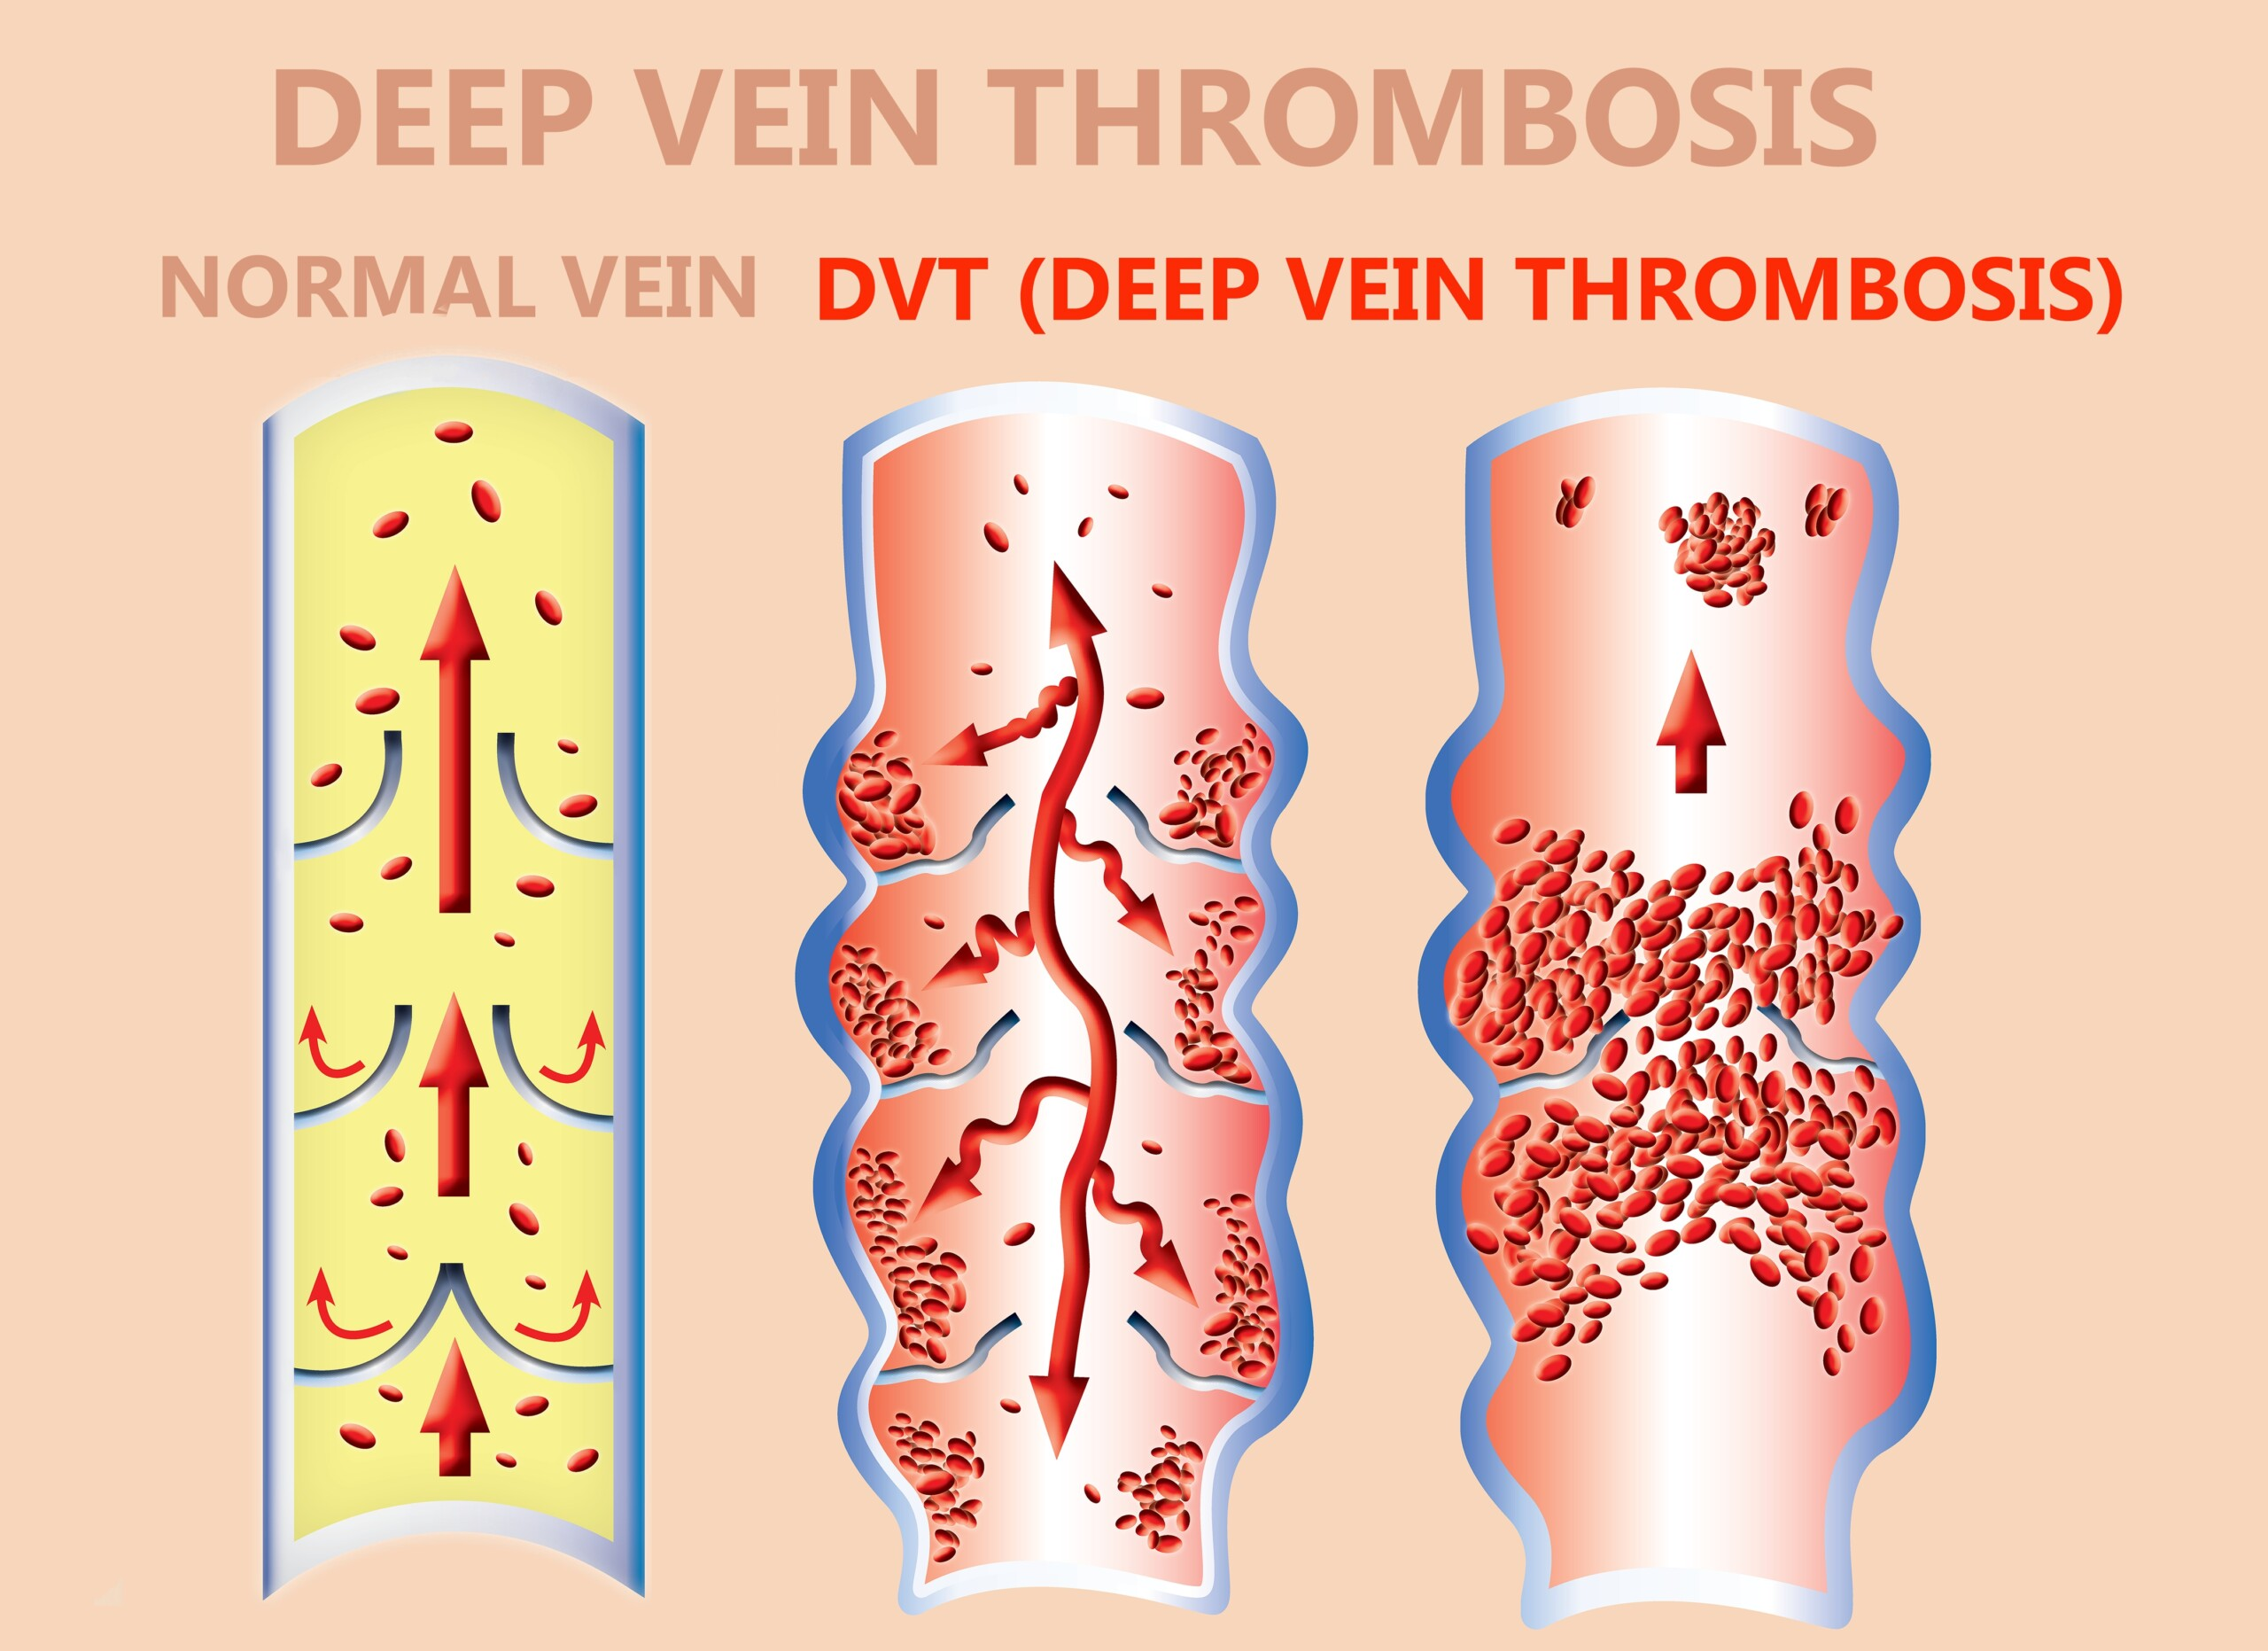 Does Microscopic Colitis Increase Risk of a DVT ?